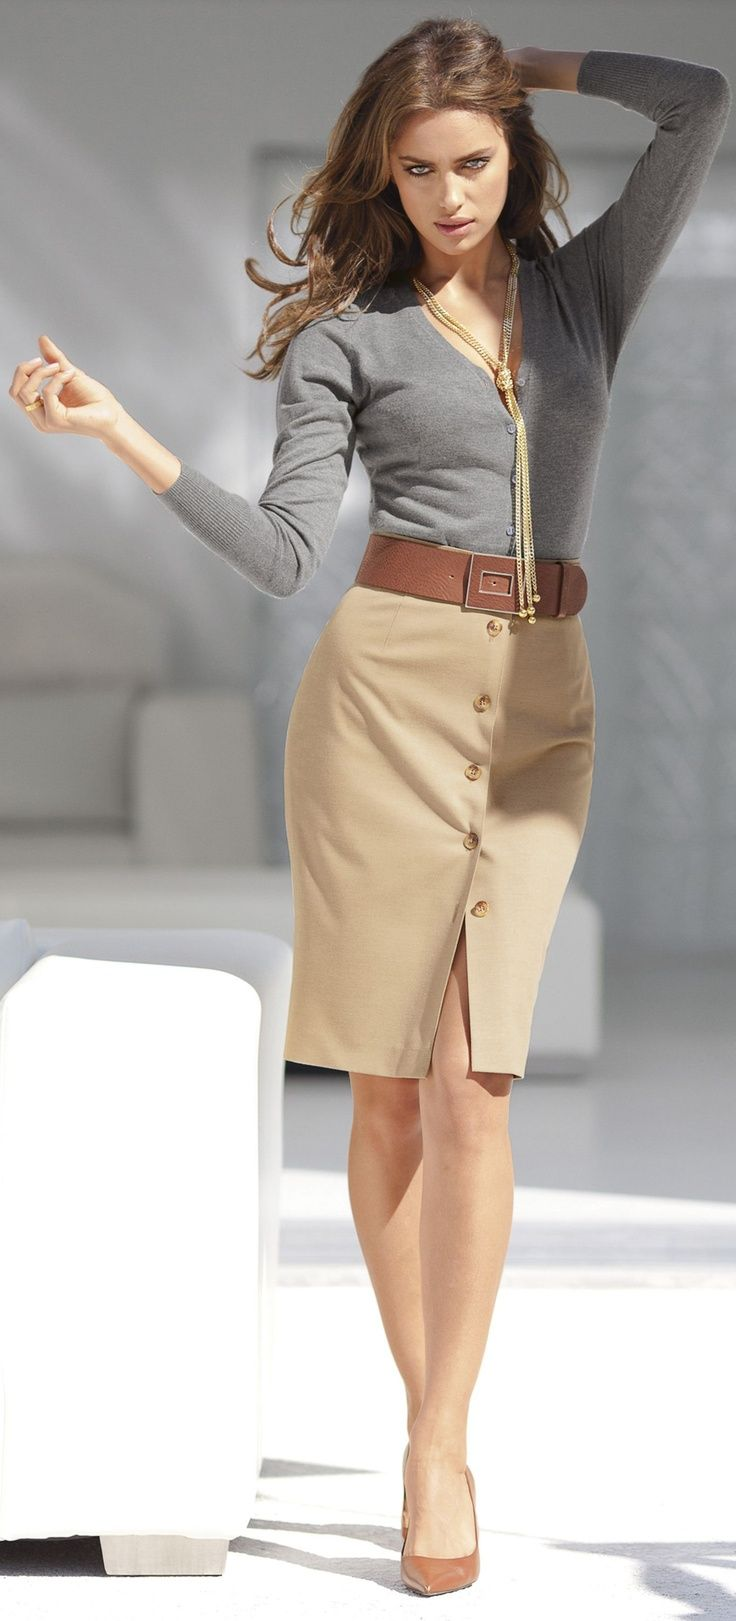 casual business outfit for a light day in the office Fashion, Style, Offices, Casual, Business Outfit, Pencil Skirts, Classic Skirt, Work Outfit, Work Attire